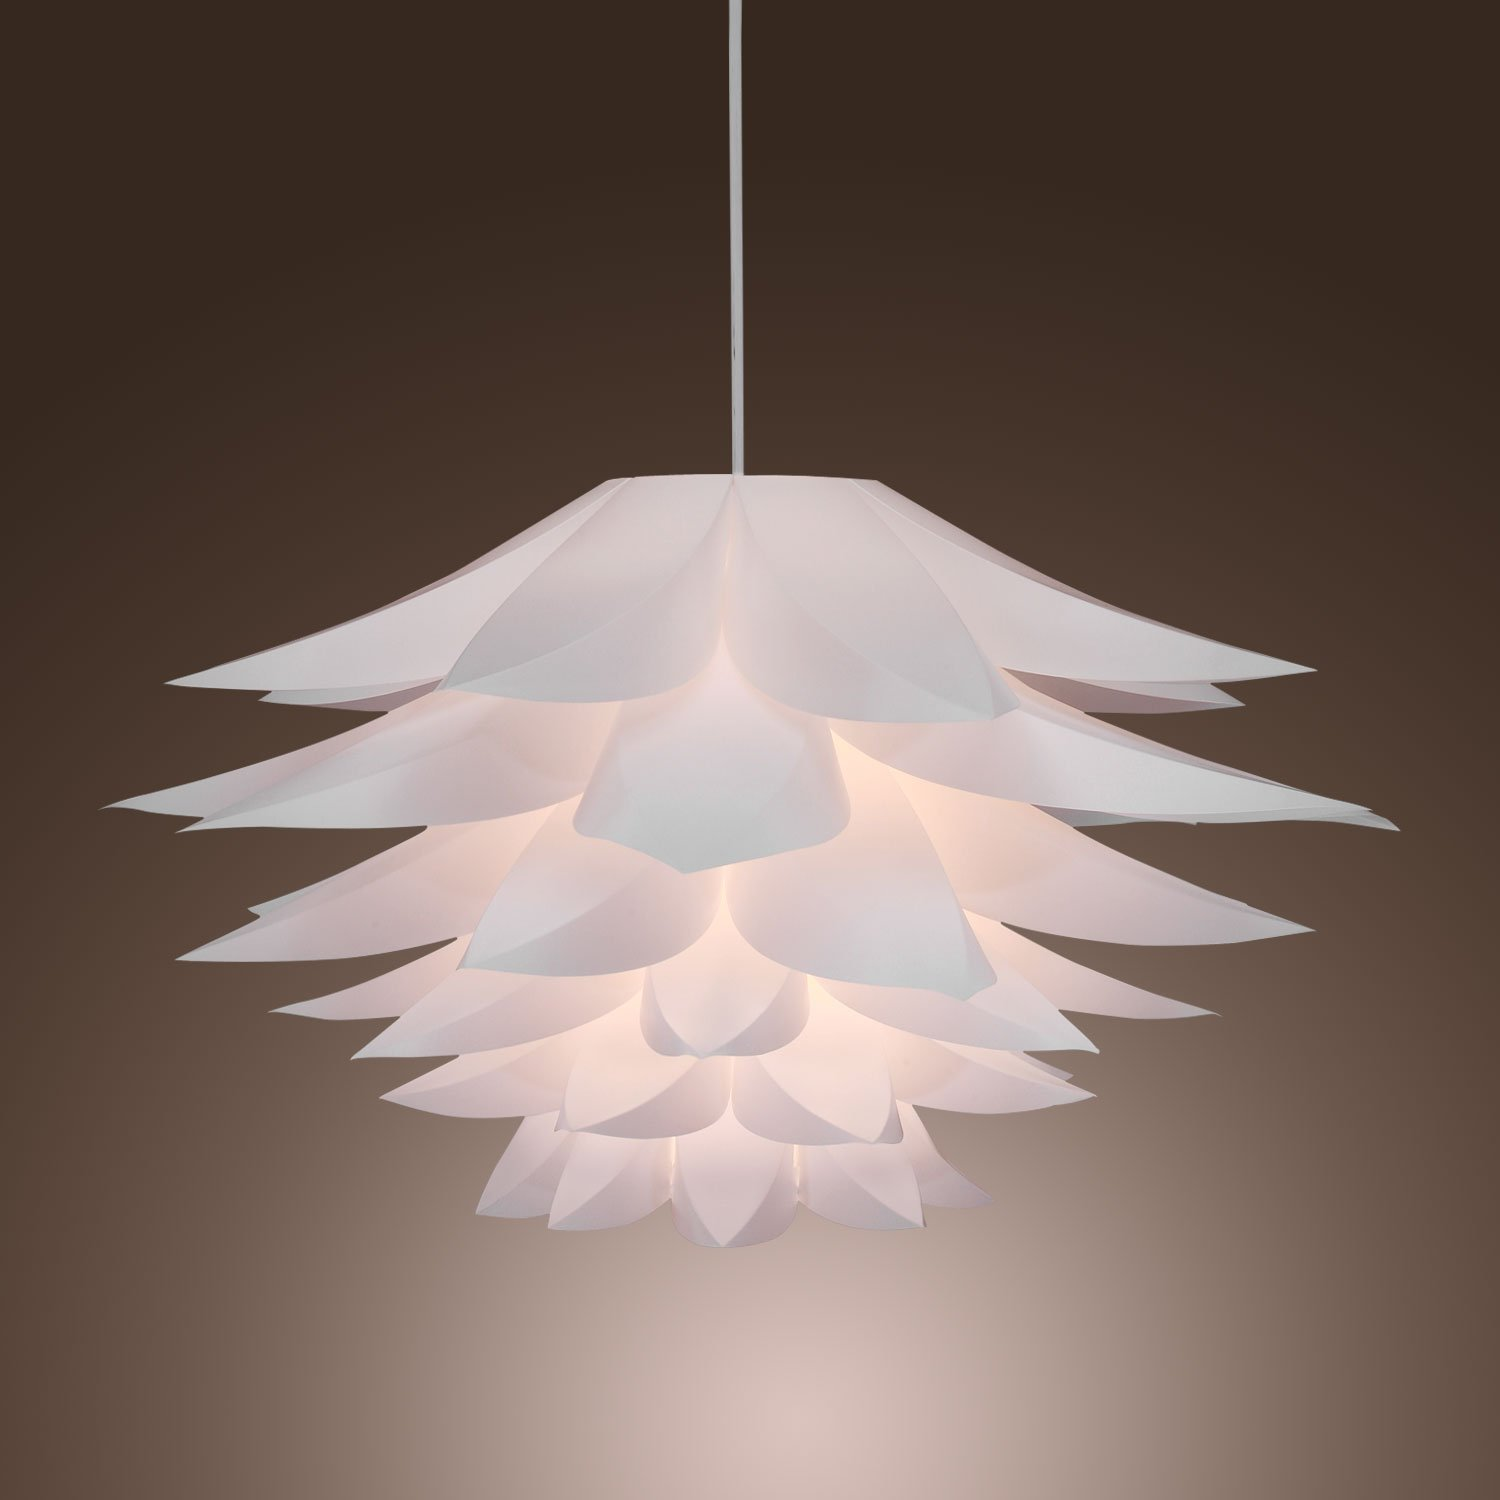 lightinthebox w floral pendant light in petal featured shade  - lightinthebox w floral pendant light in petal featured shade modernceiling light fixture for game room dining room bedroom  ceiling pendantfixtures